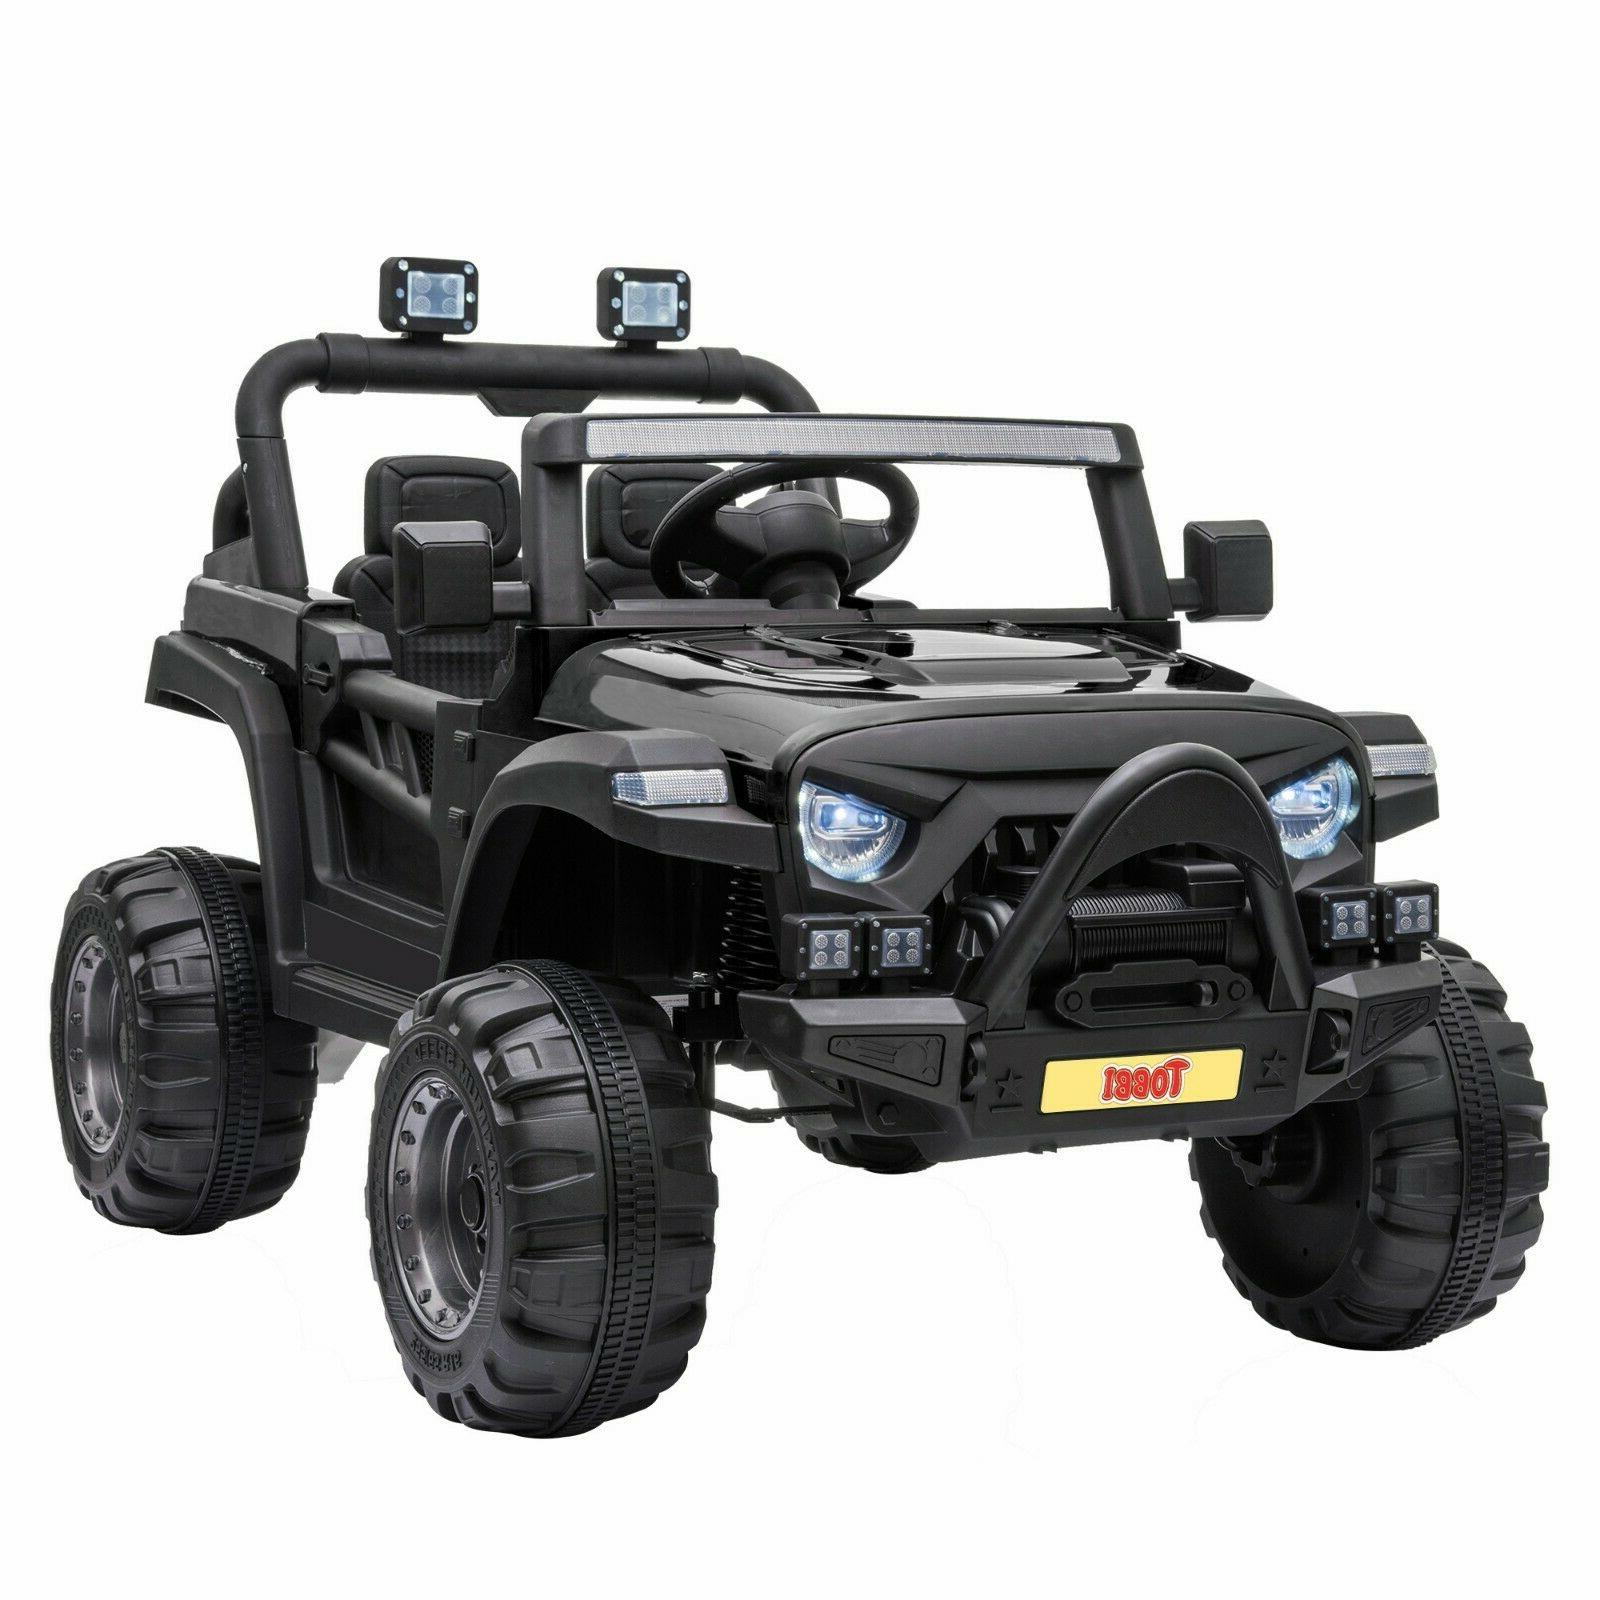 12v kids ride on truck with remote